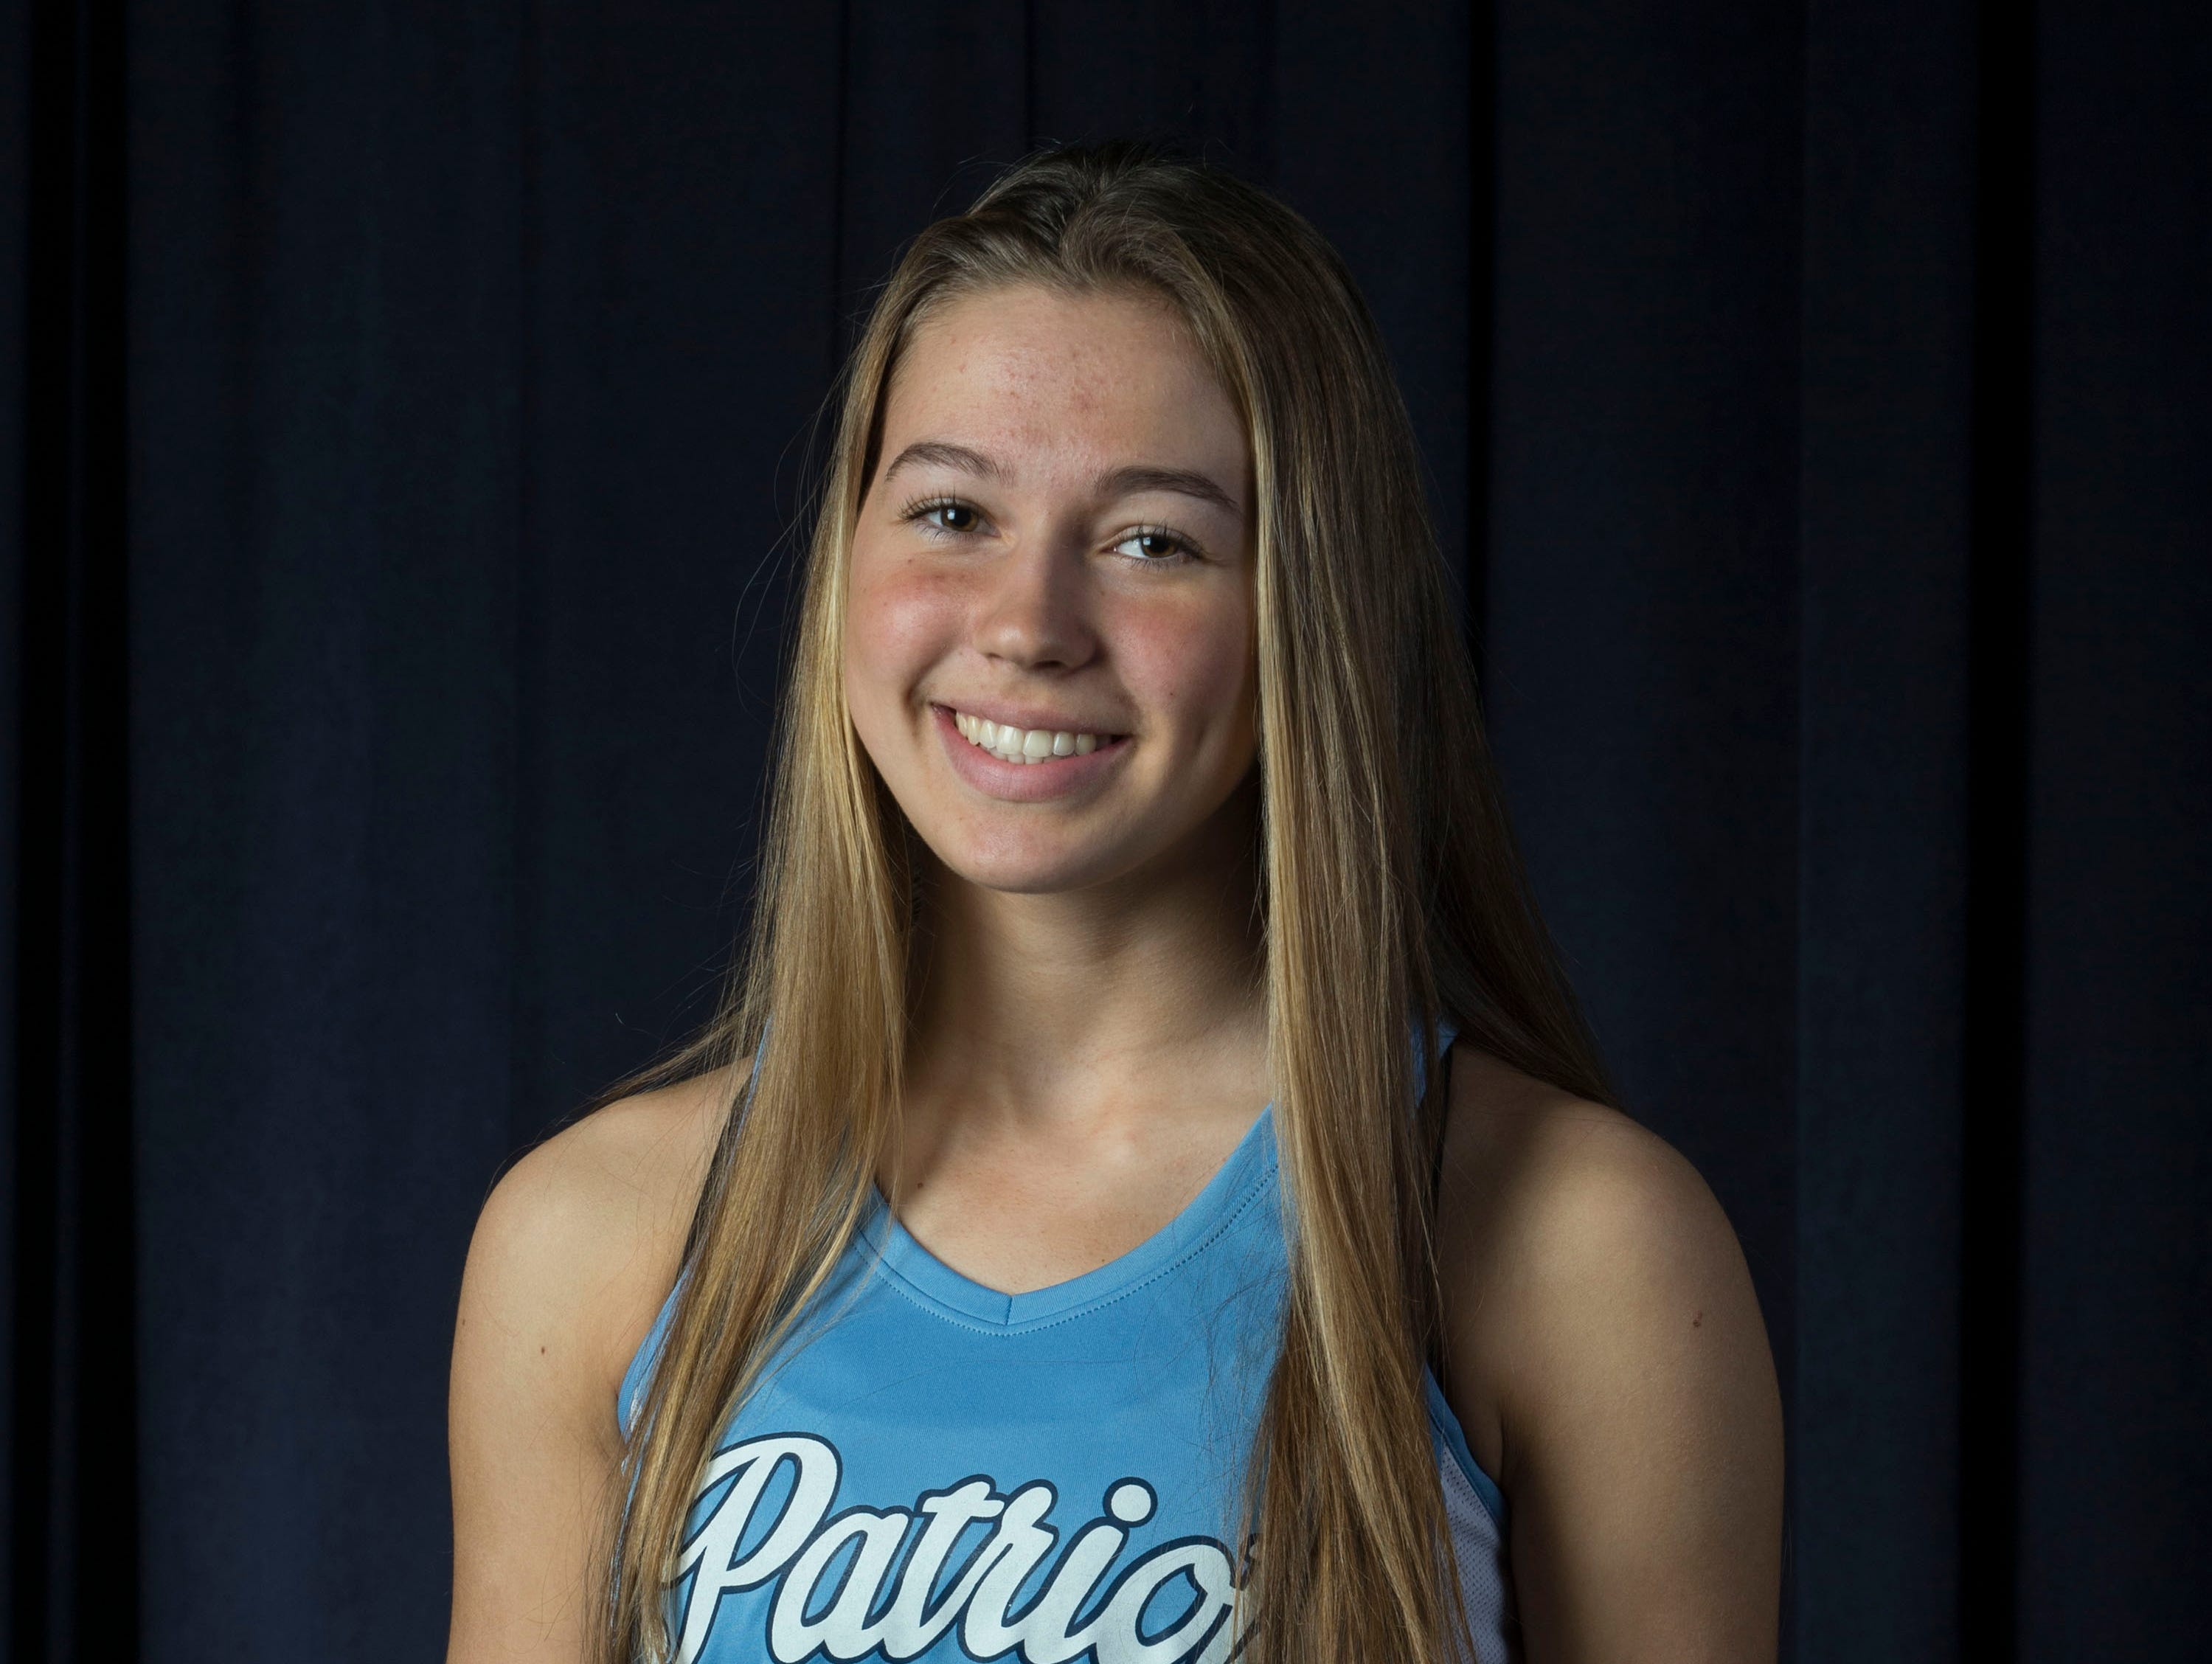 The 2019 All-Shore Girls Track- Isabel Fronc of Freehold Township